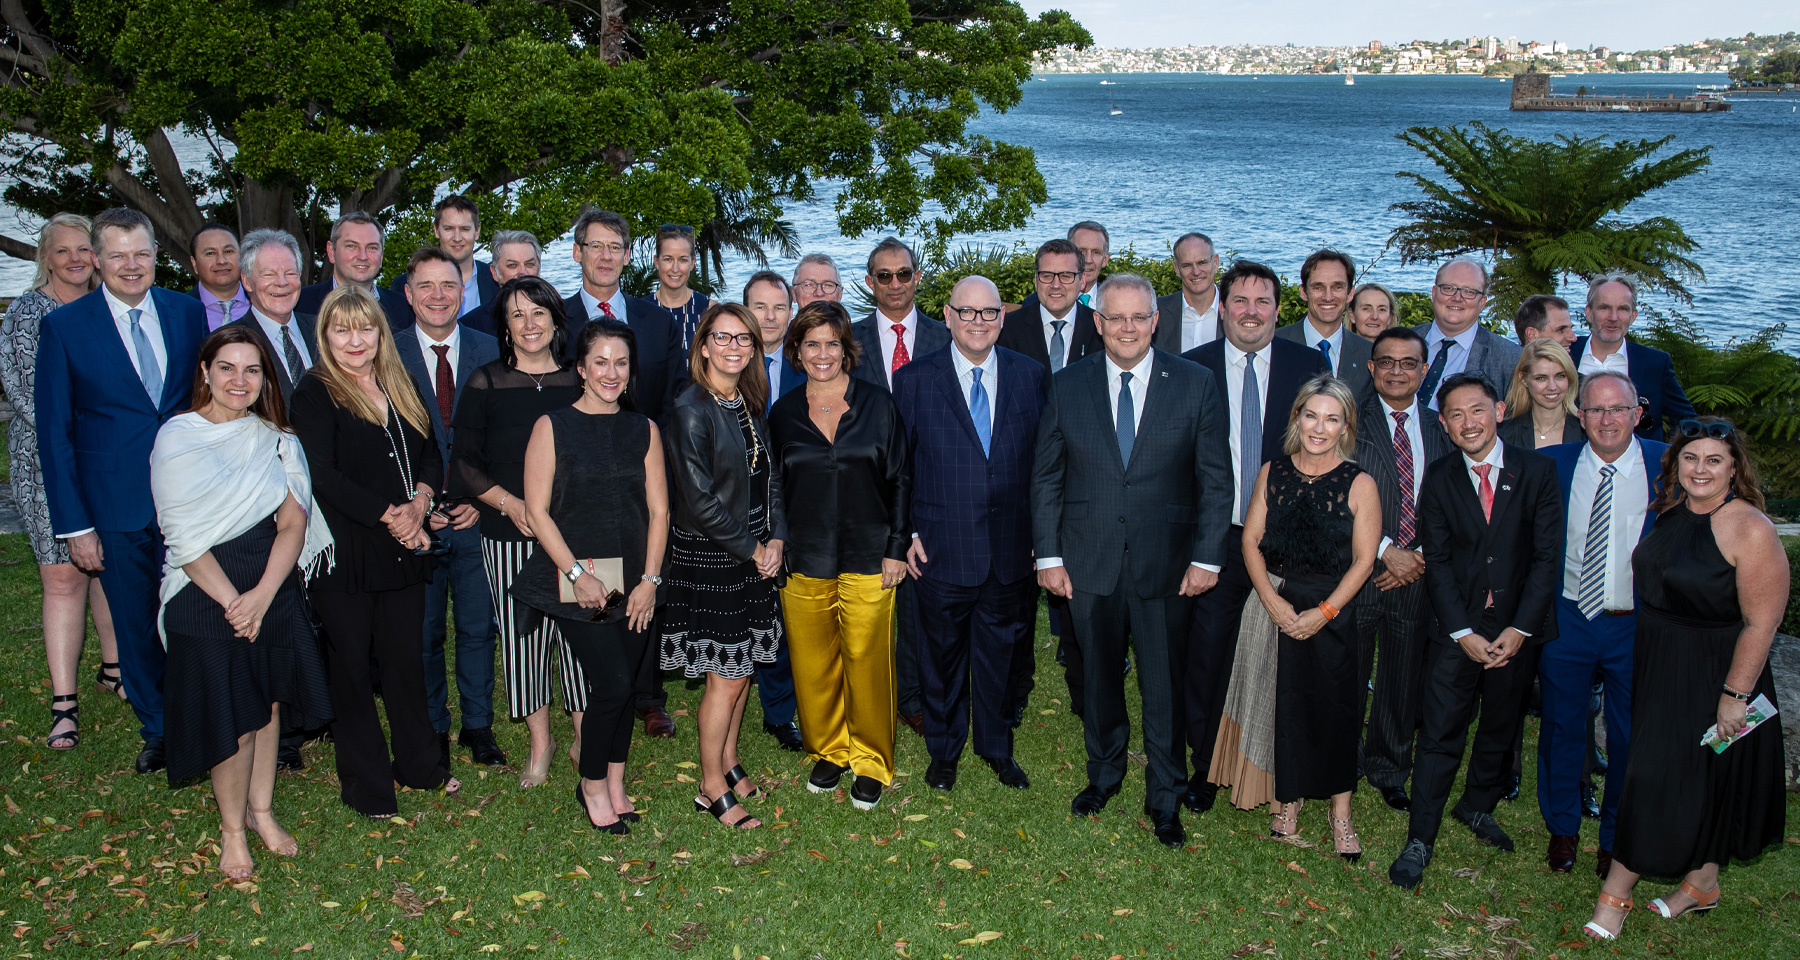 The INMA Board of Directors, pictured along with the top executives from News Corp Australia and Nine, as they met with Australian Prime Minister Scott Morrison in November at his official Sydney residence, Kirribilli House.